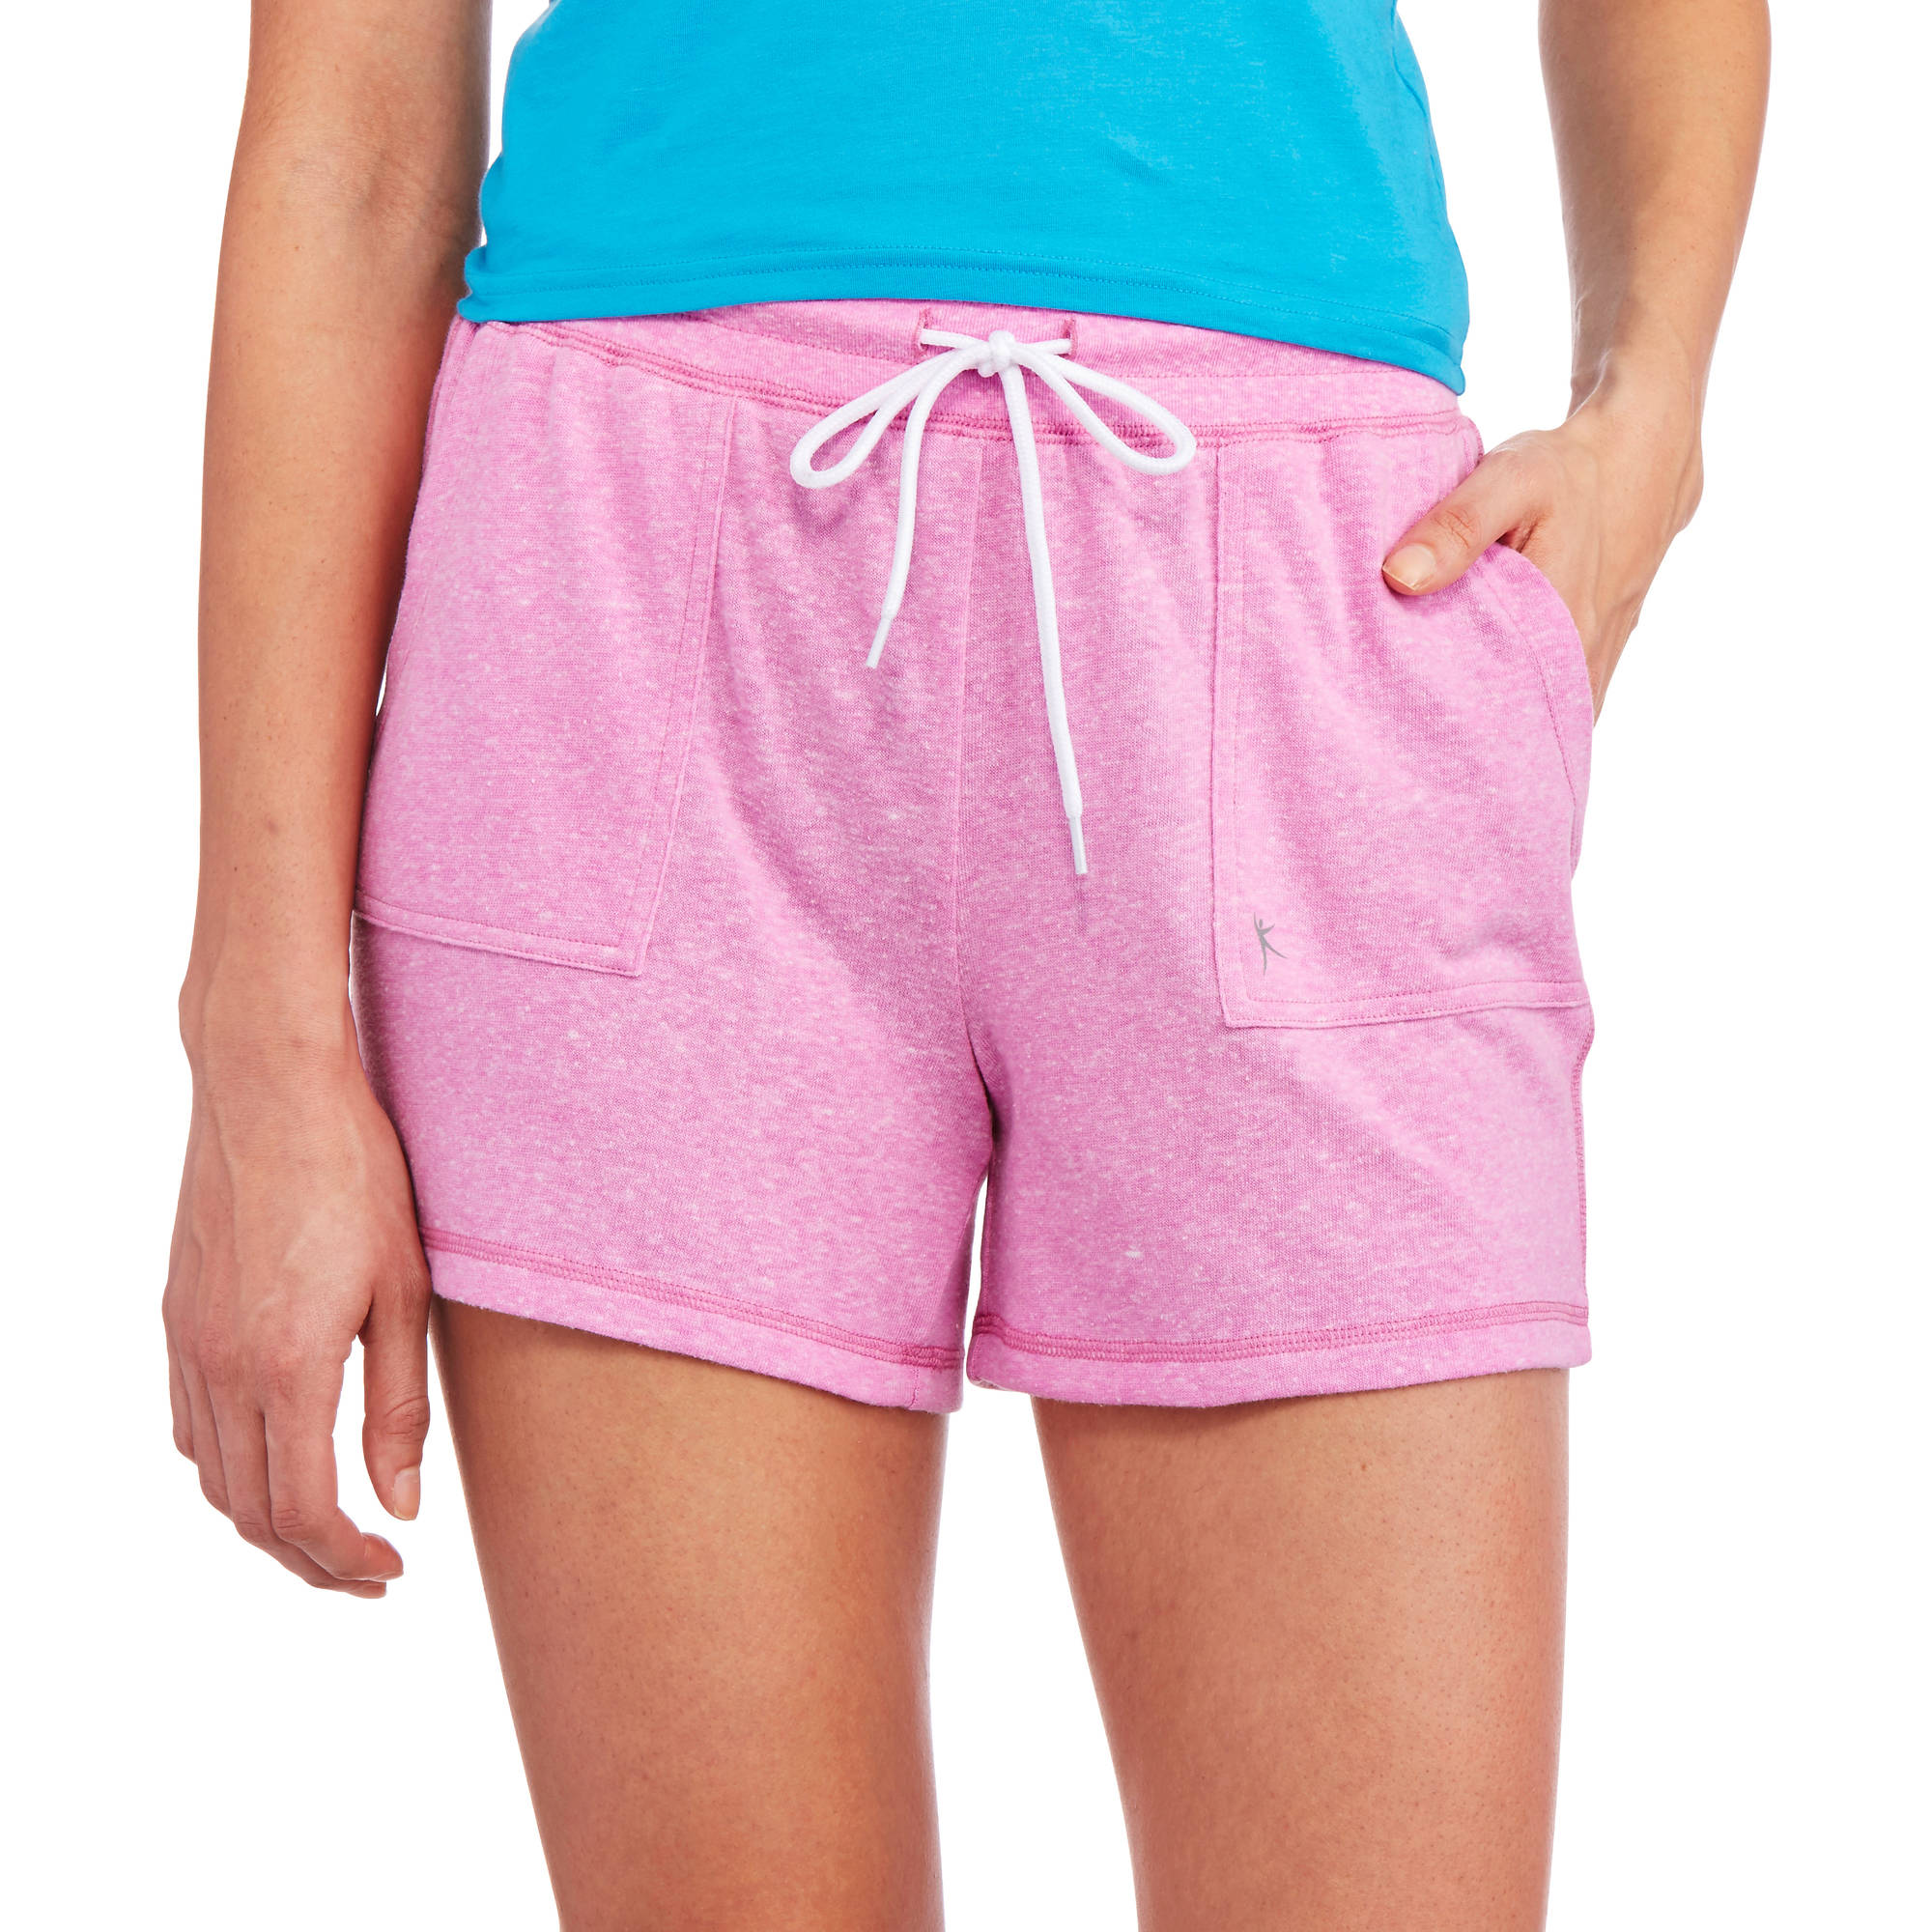 Danskin Now Women's Basic Knit Gym Short